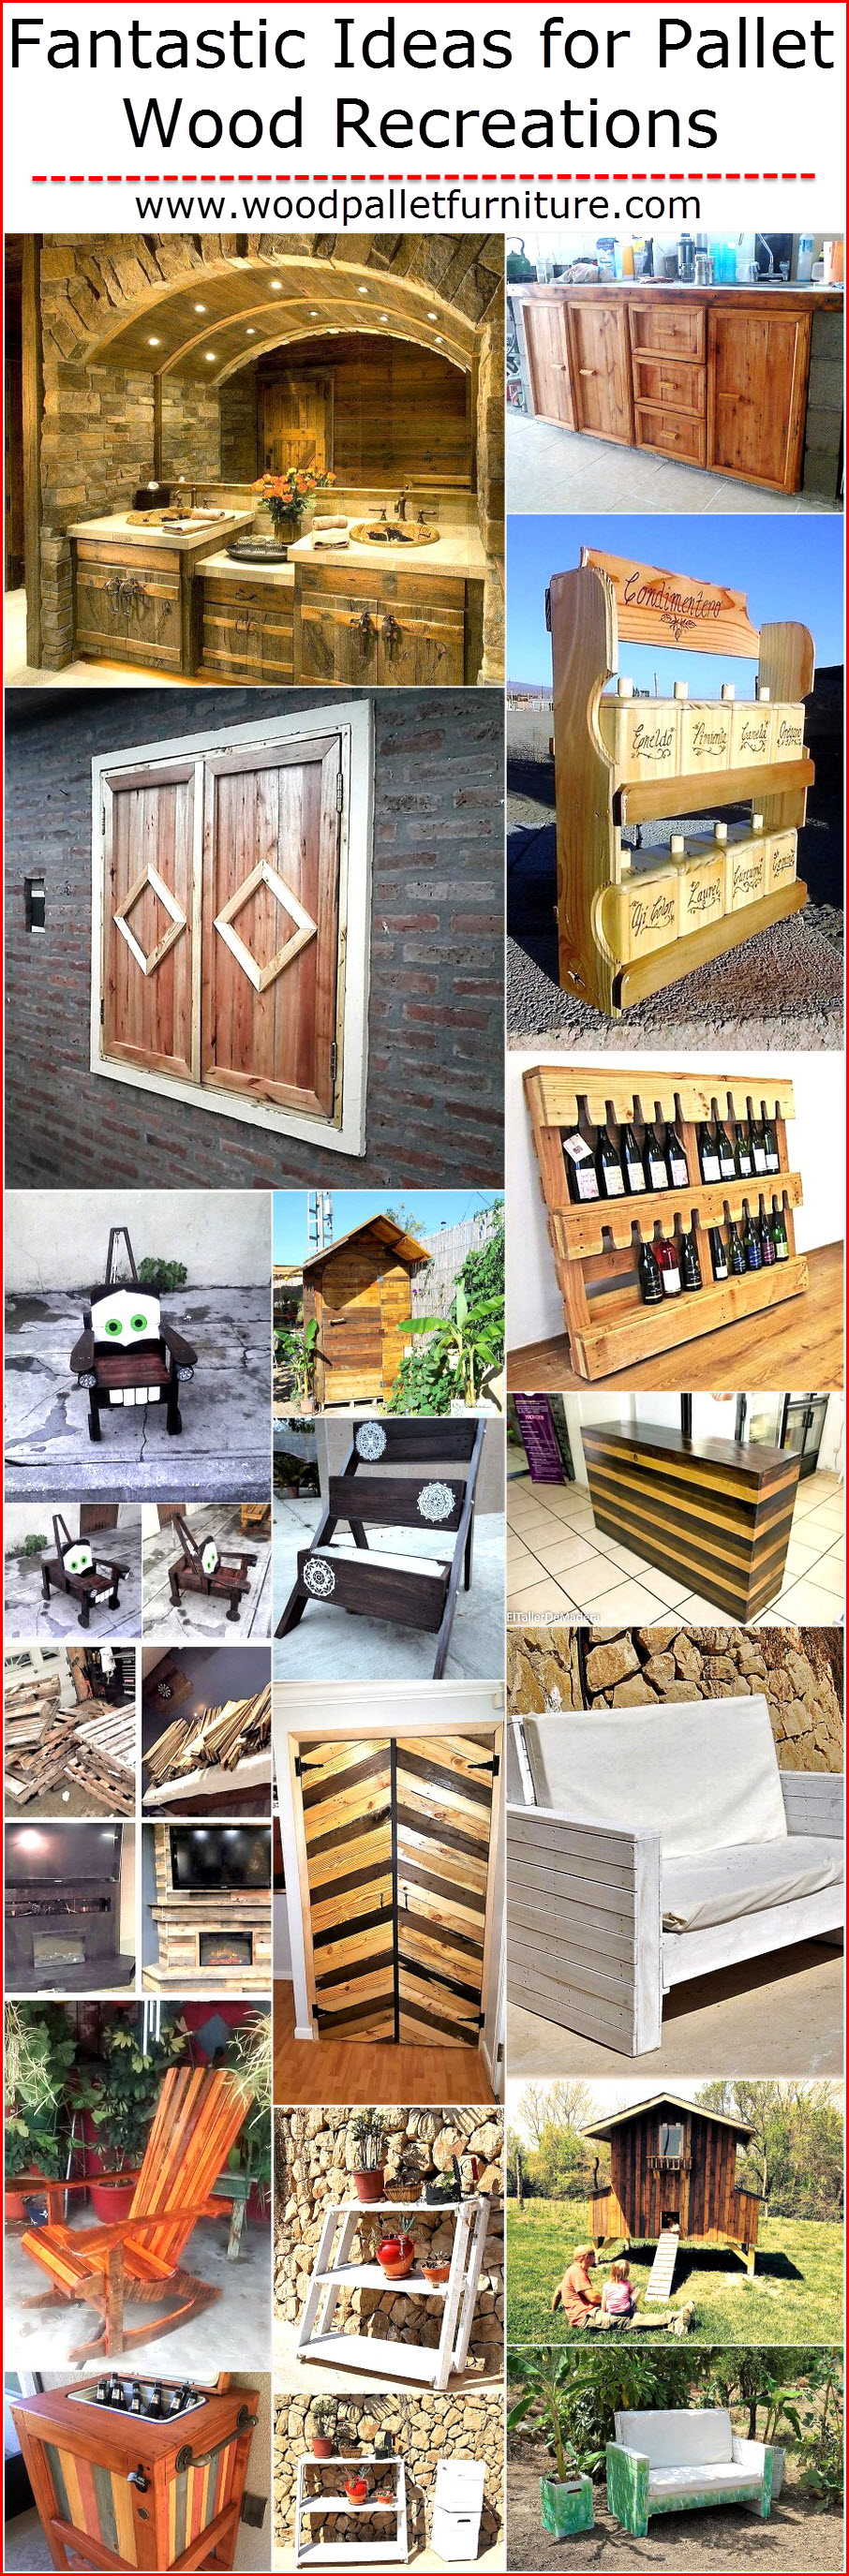 fantastic-ideas-for-pallet-wood-recreations